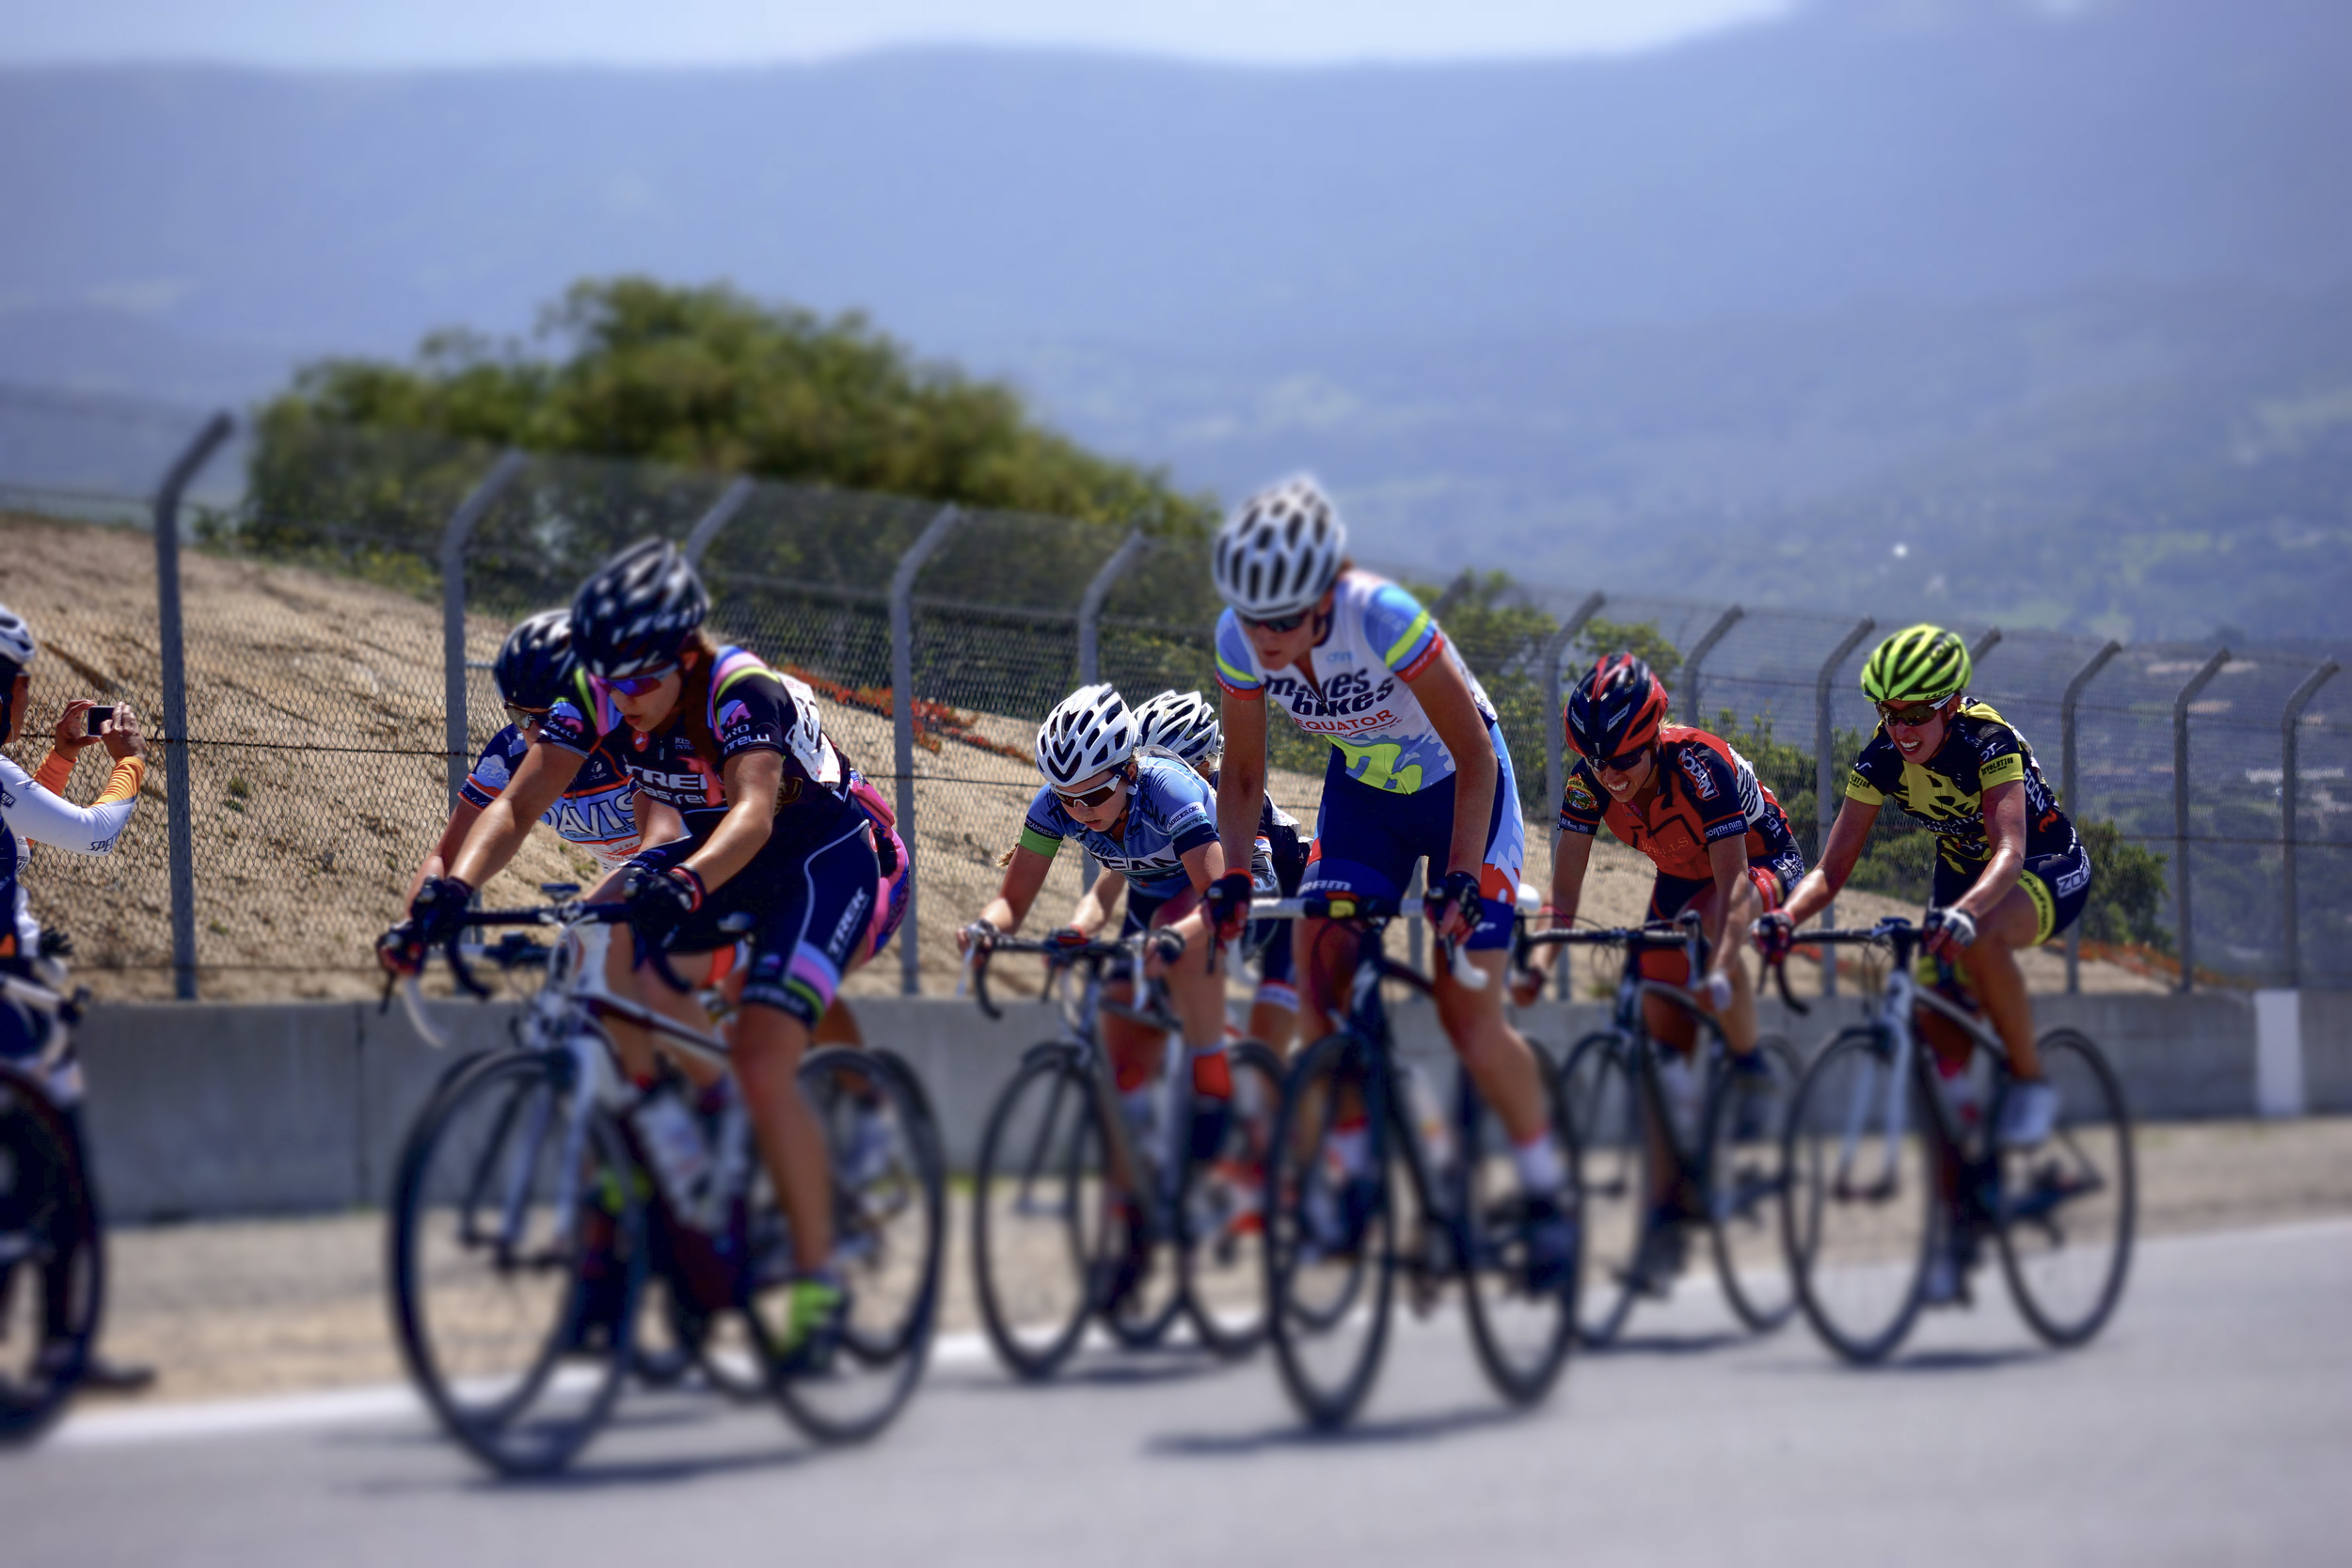 Angel looking strong in the Sea Otter Road Race